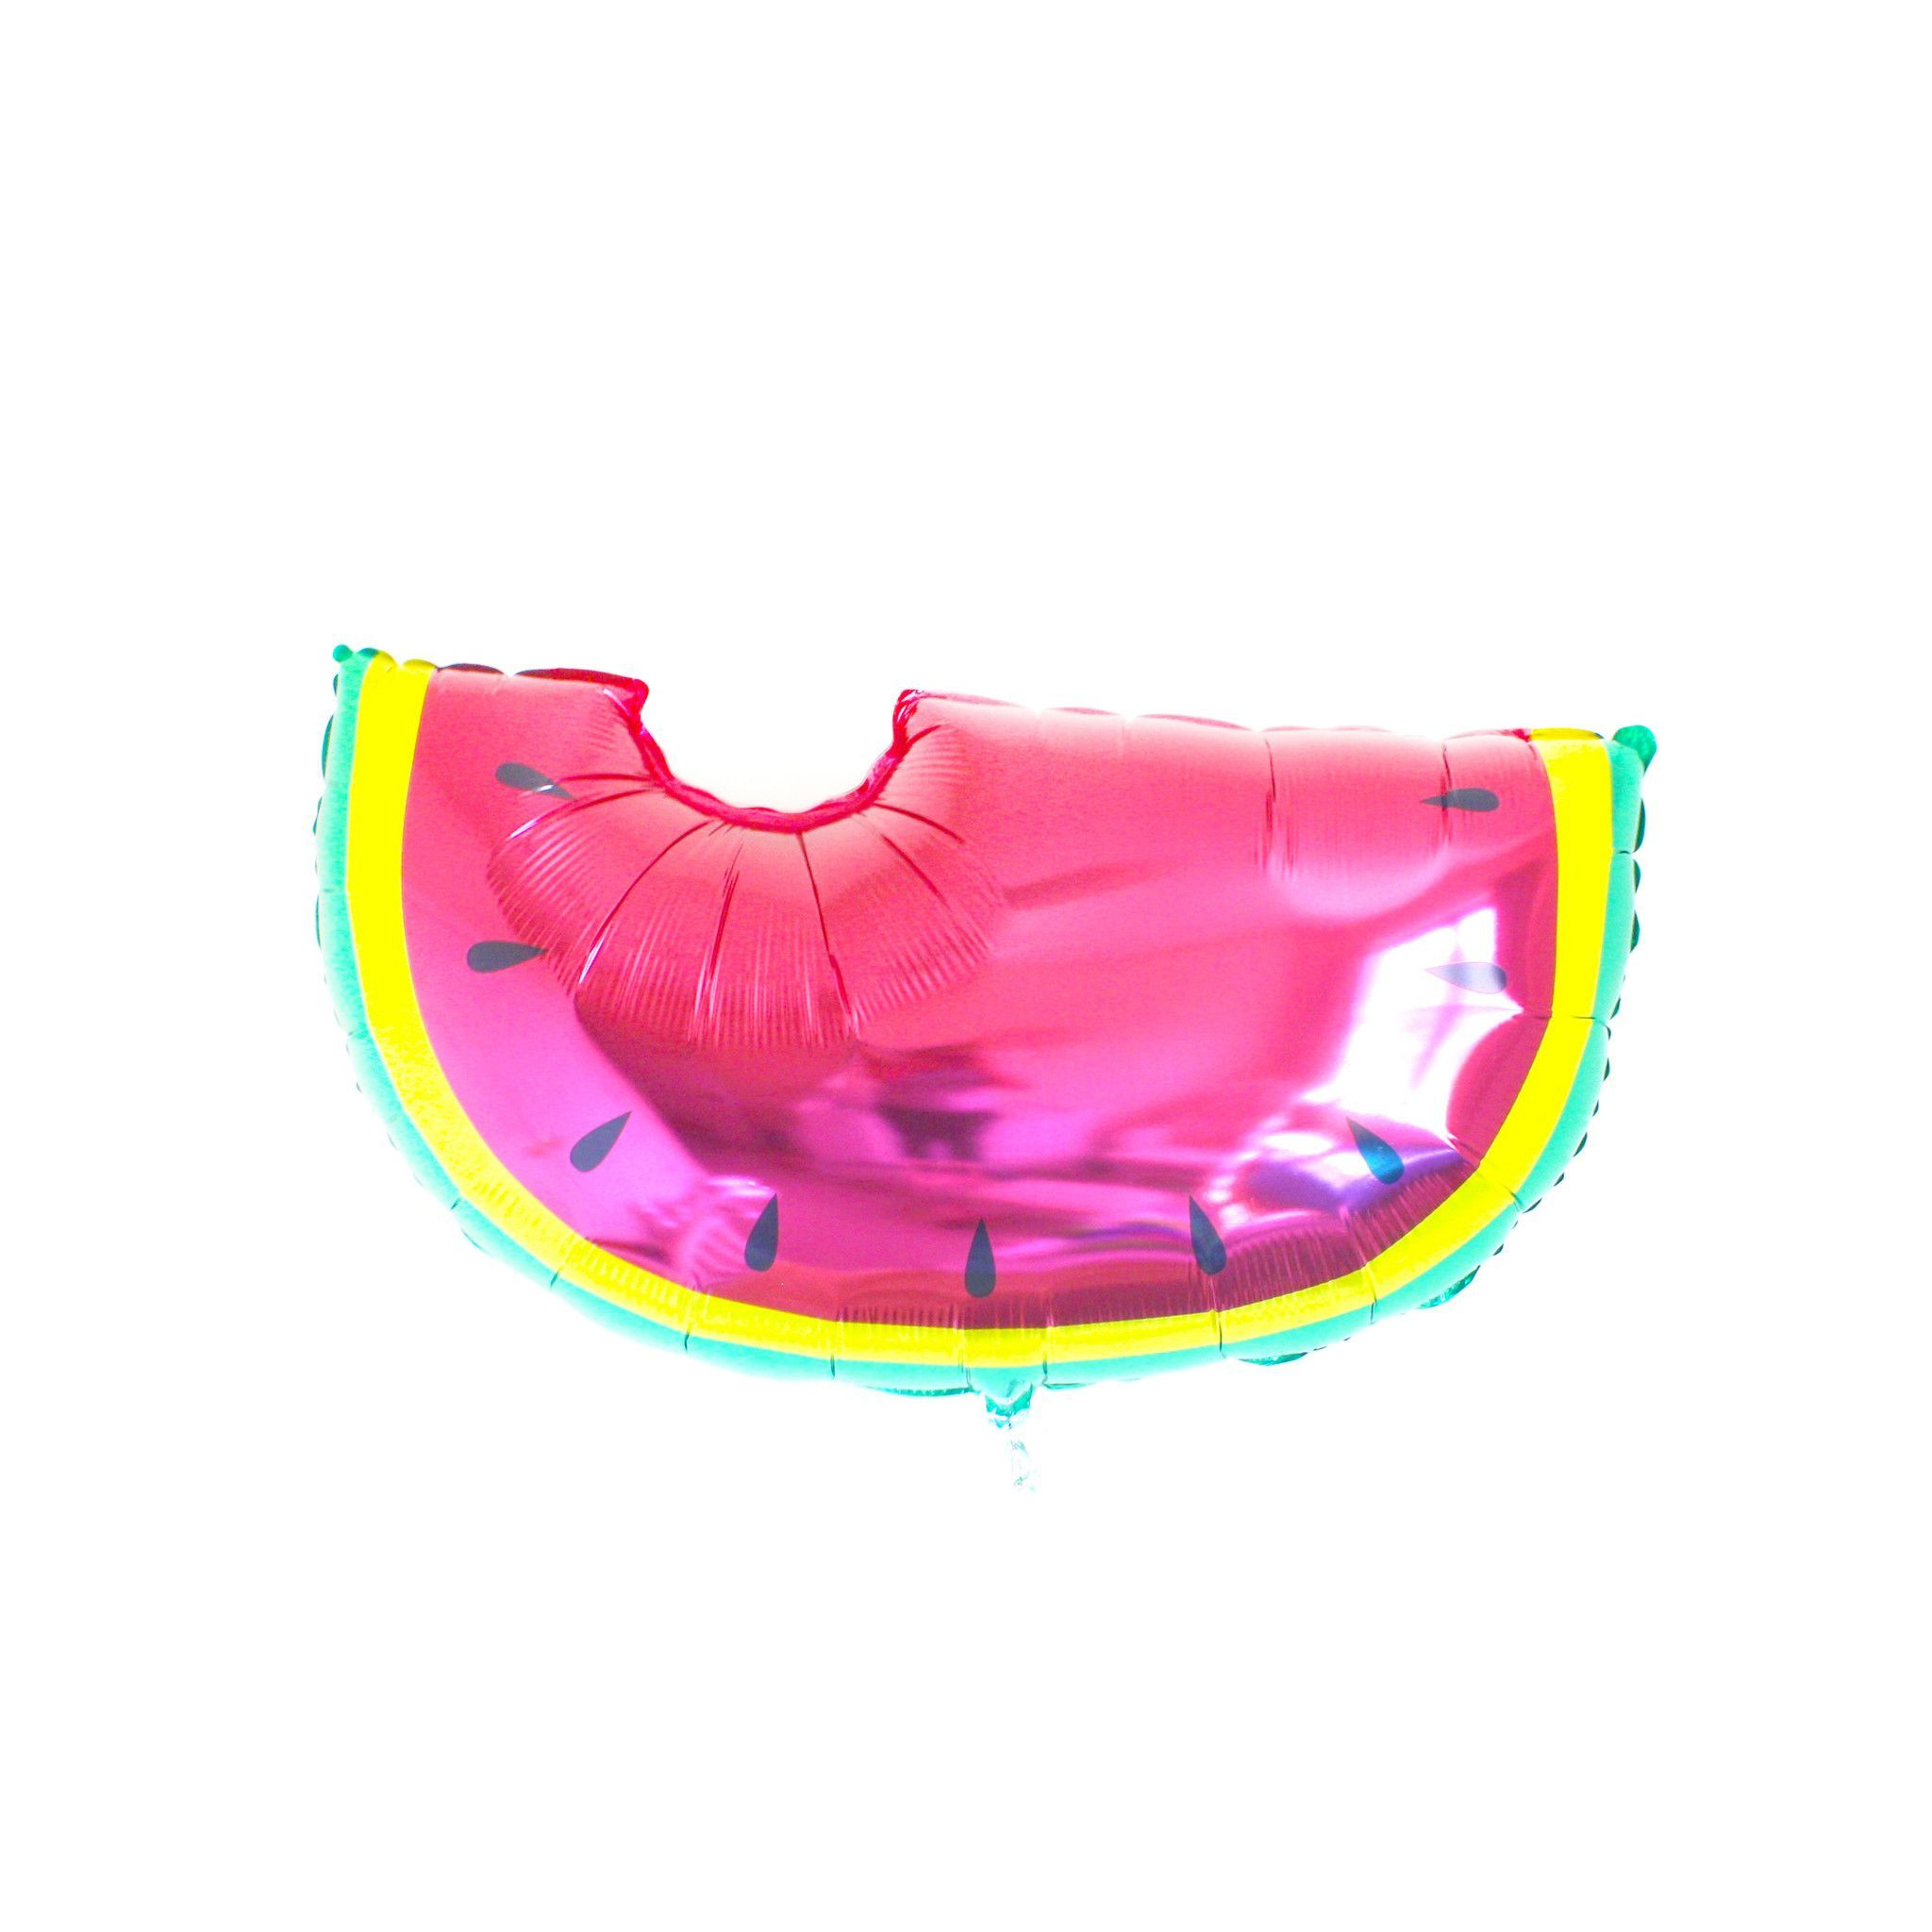 Watermelon Balloon (With images) Watermelon party